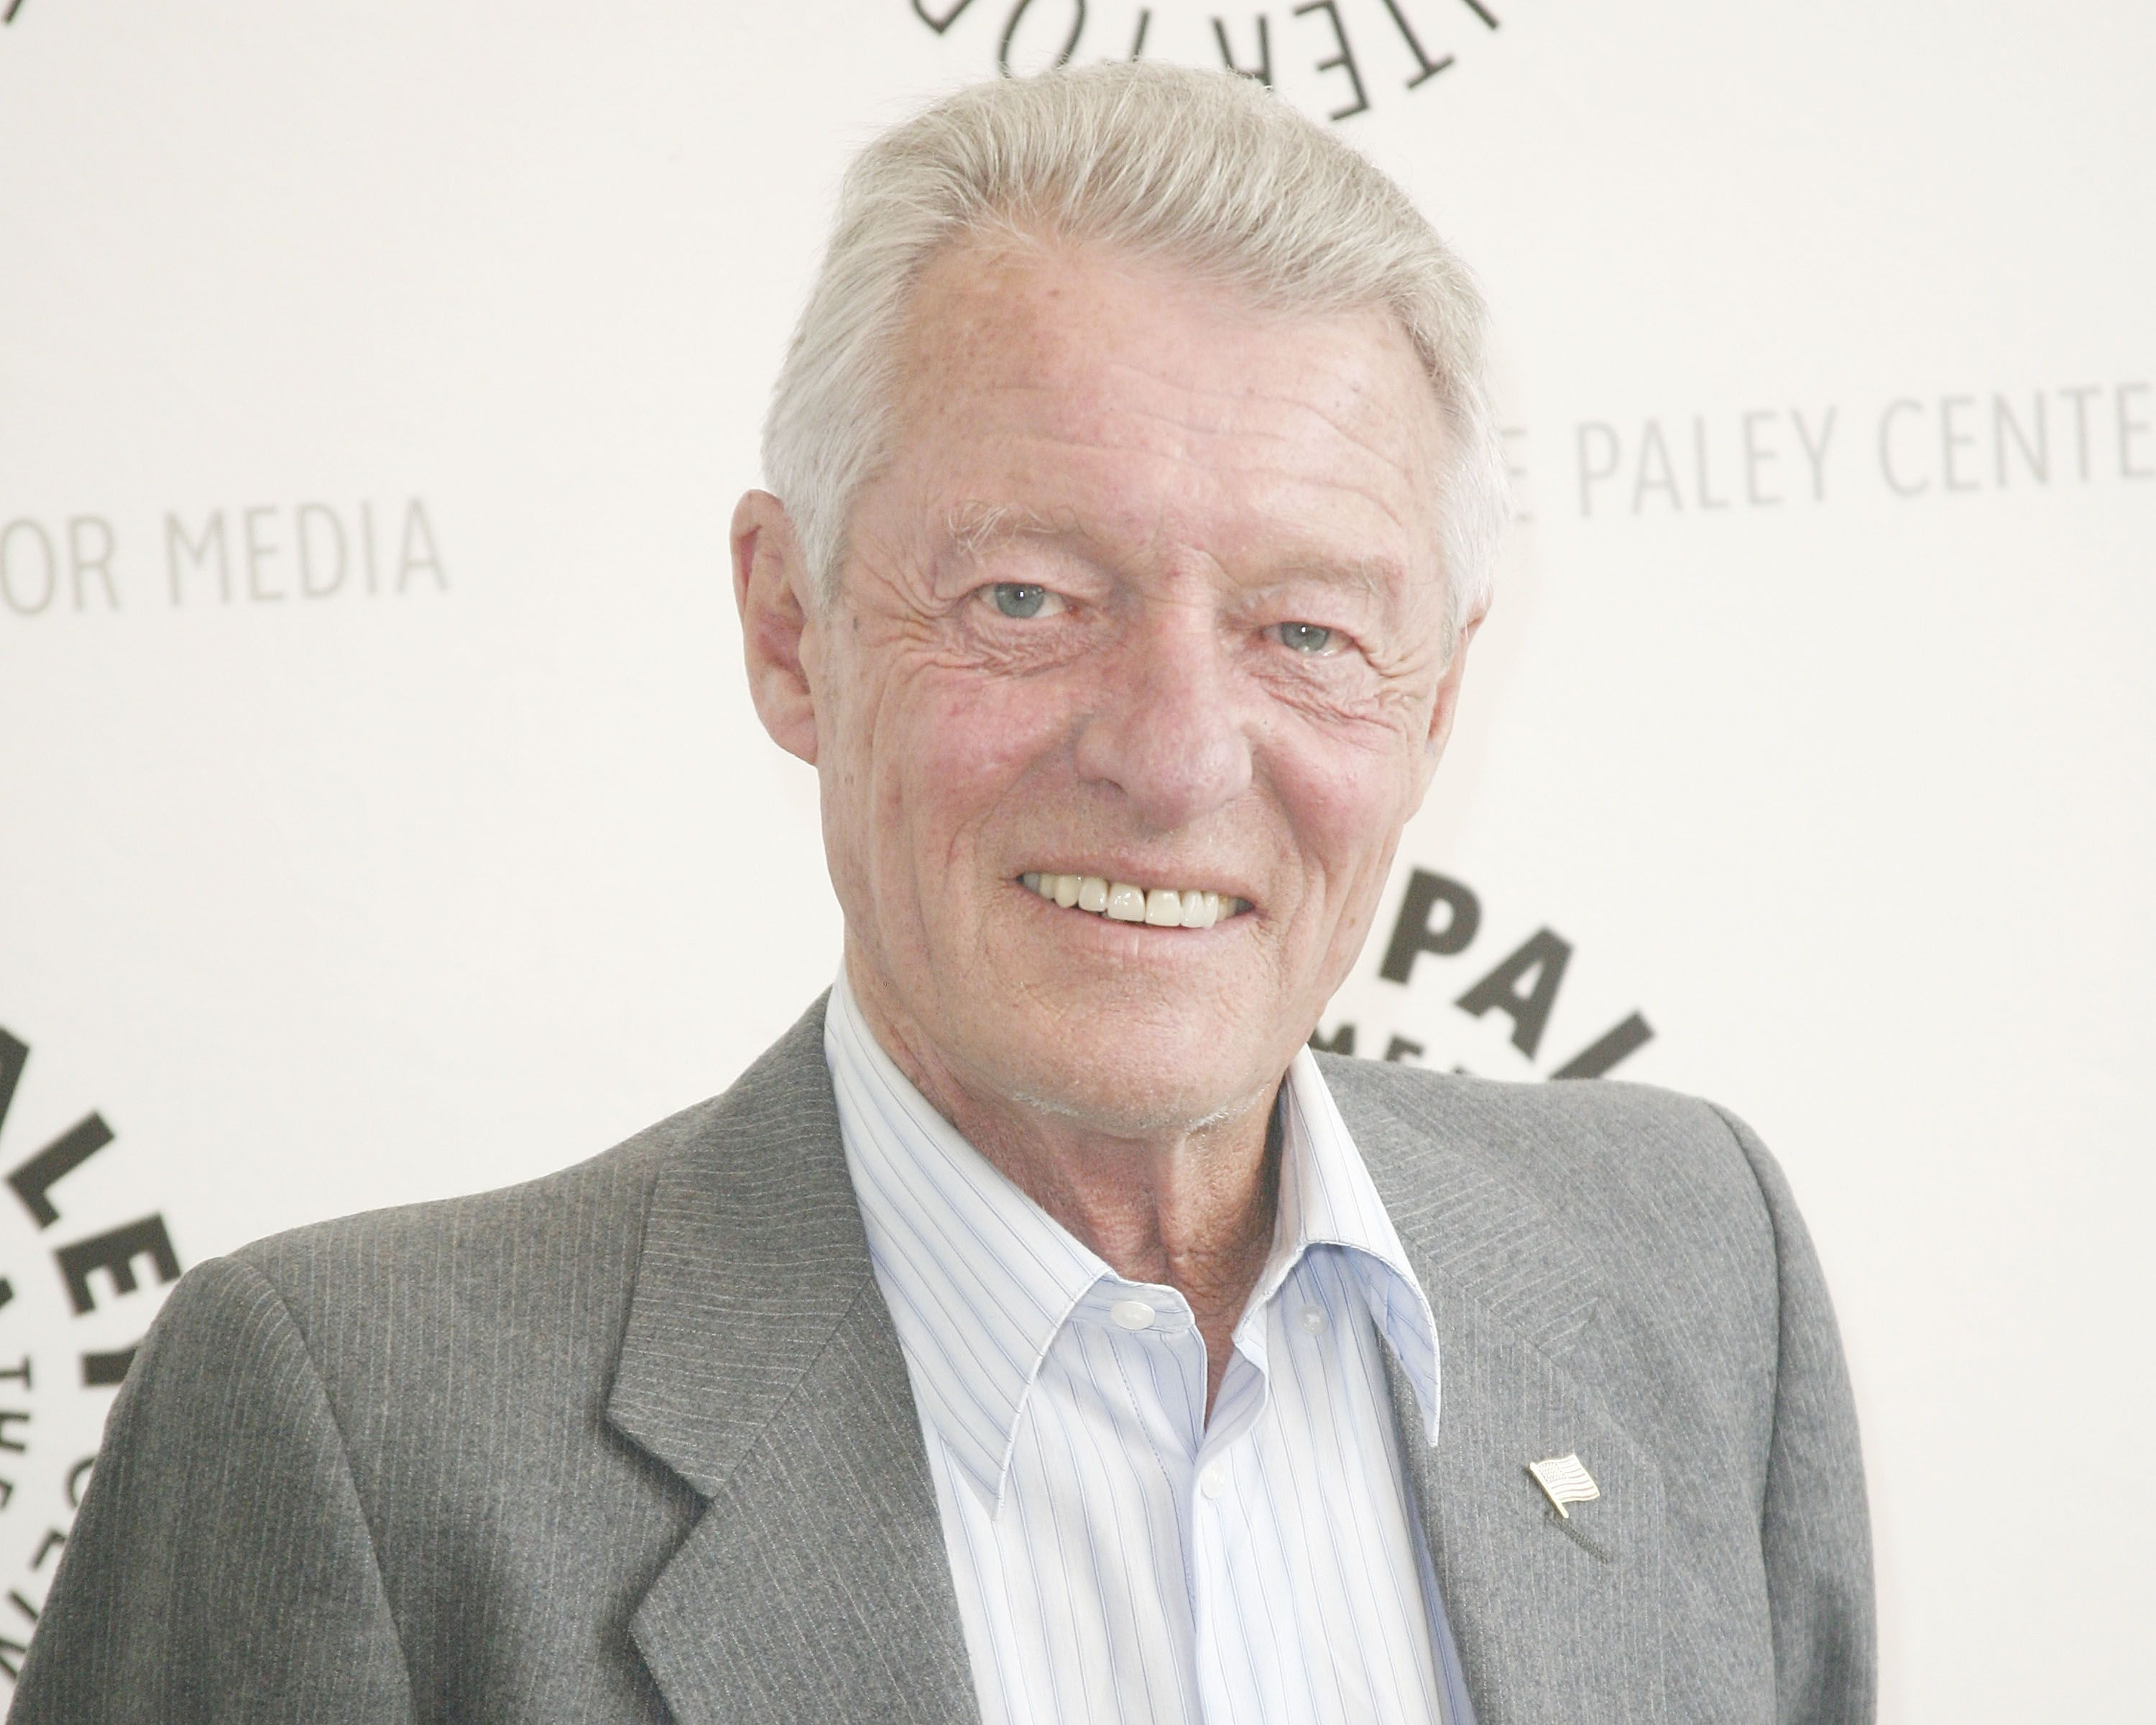 Ken Osmond at The Paley Center for Media on June 21, 2010 in Beverly Hills, California | Photo: Getty Images